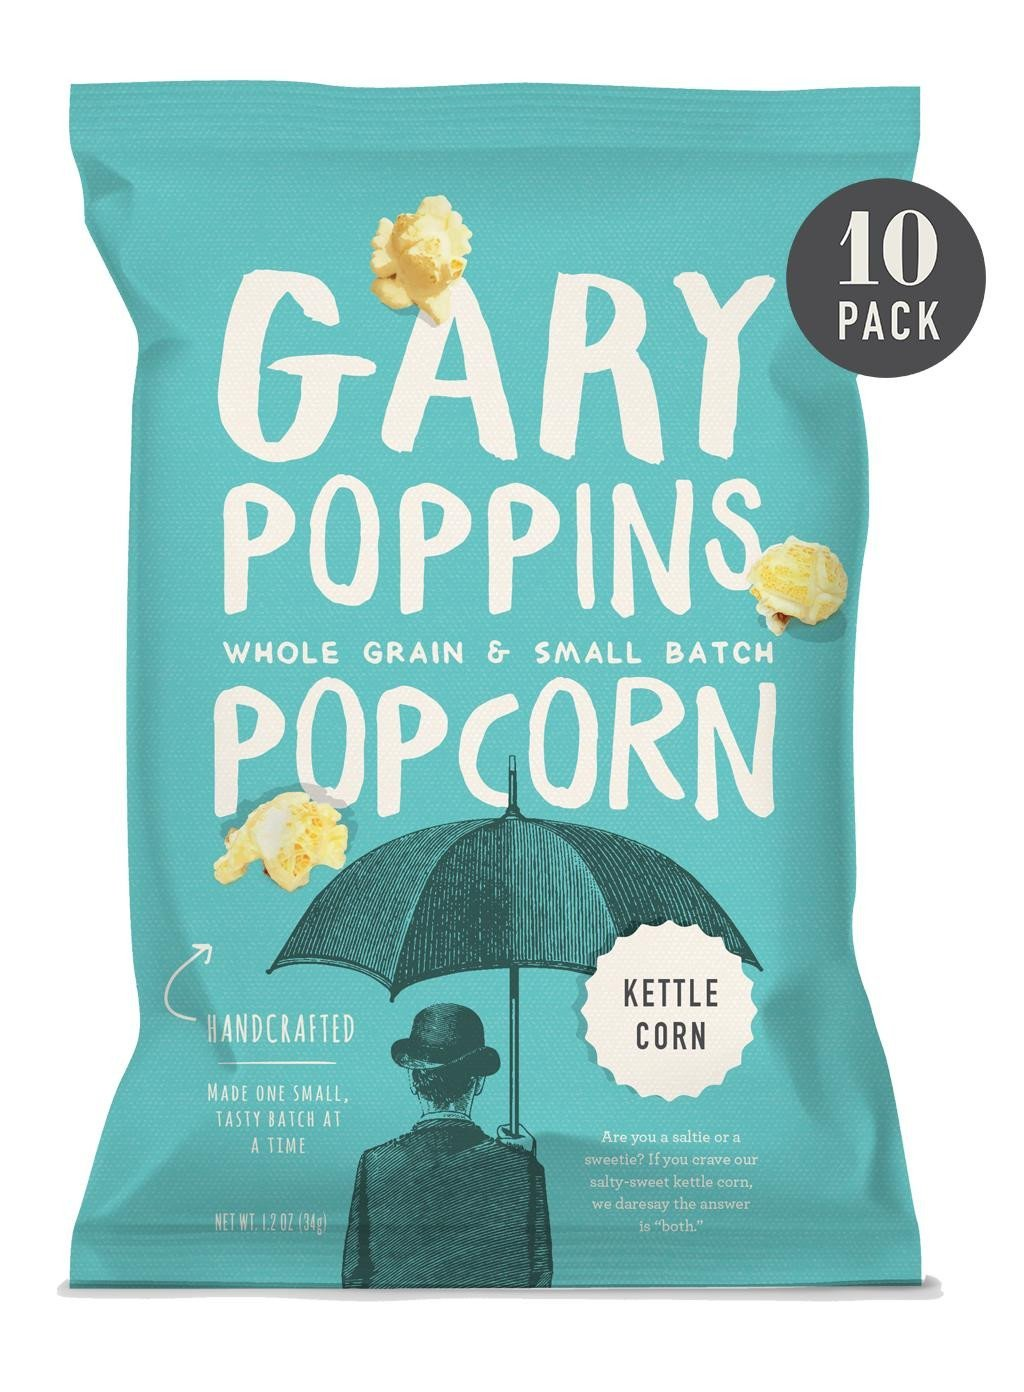 Kettle Corn - Gourmet Popcorn - Single Serve - 10 Pack